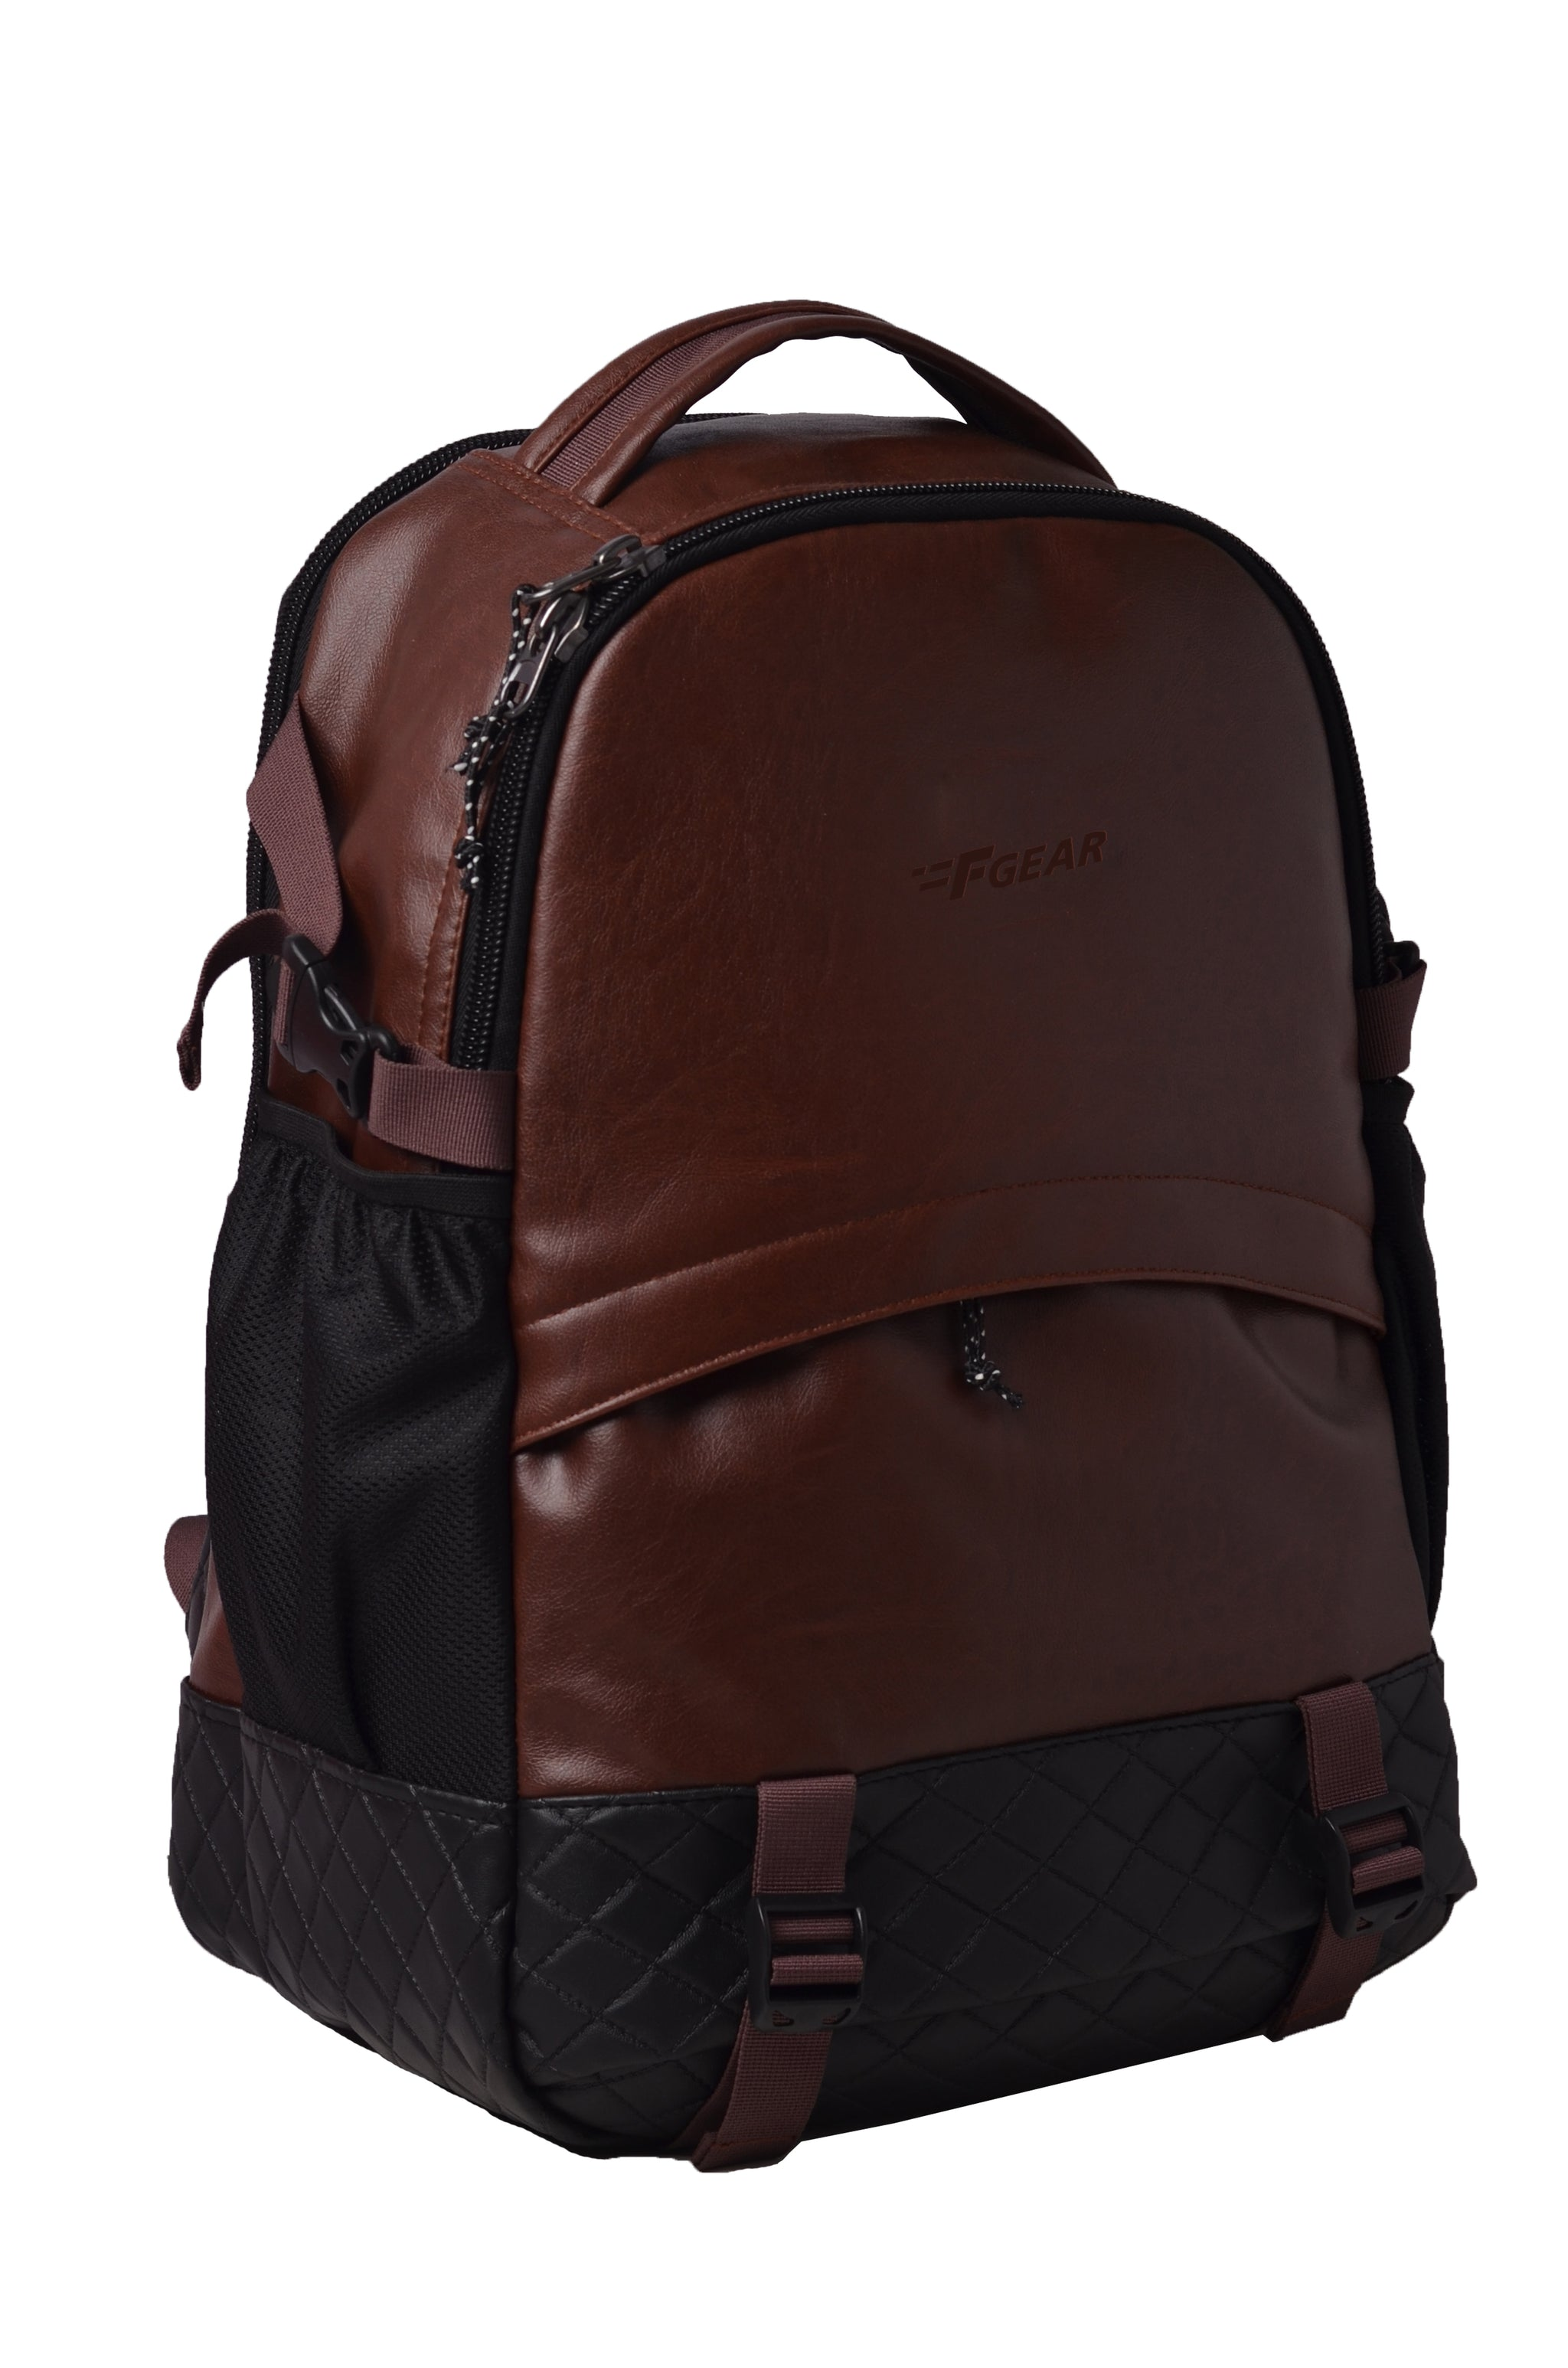 F Gear Sedna 27 Ltrs Brown Artificial Leather Casual Backpack (2599)